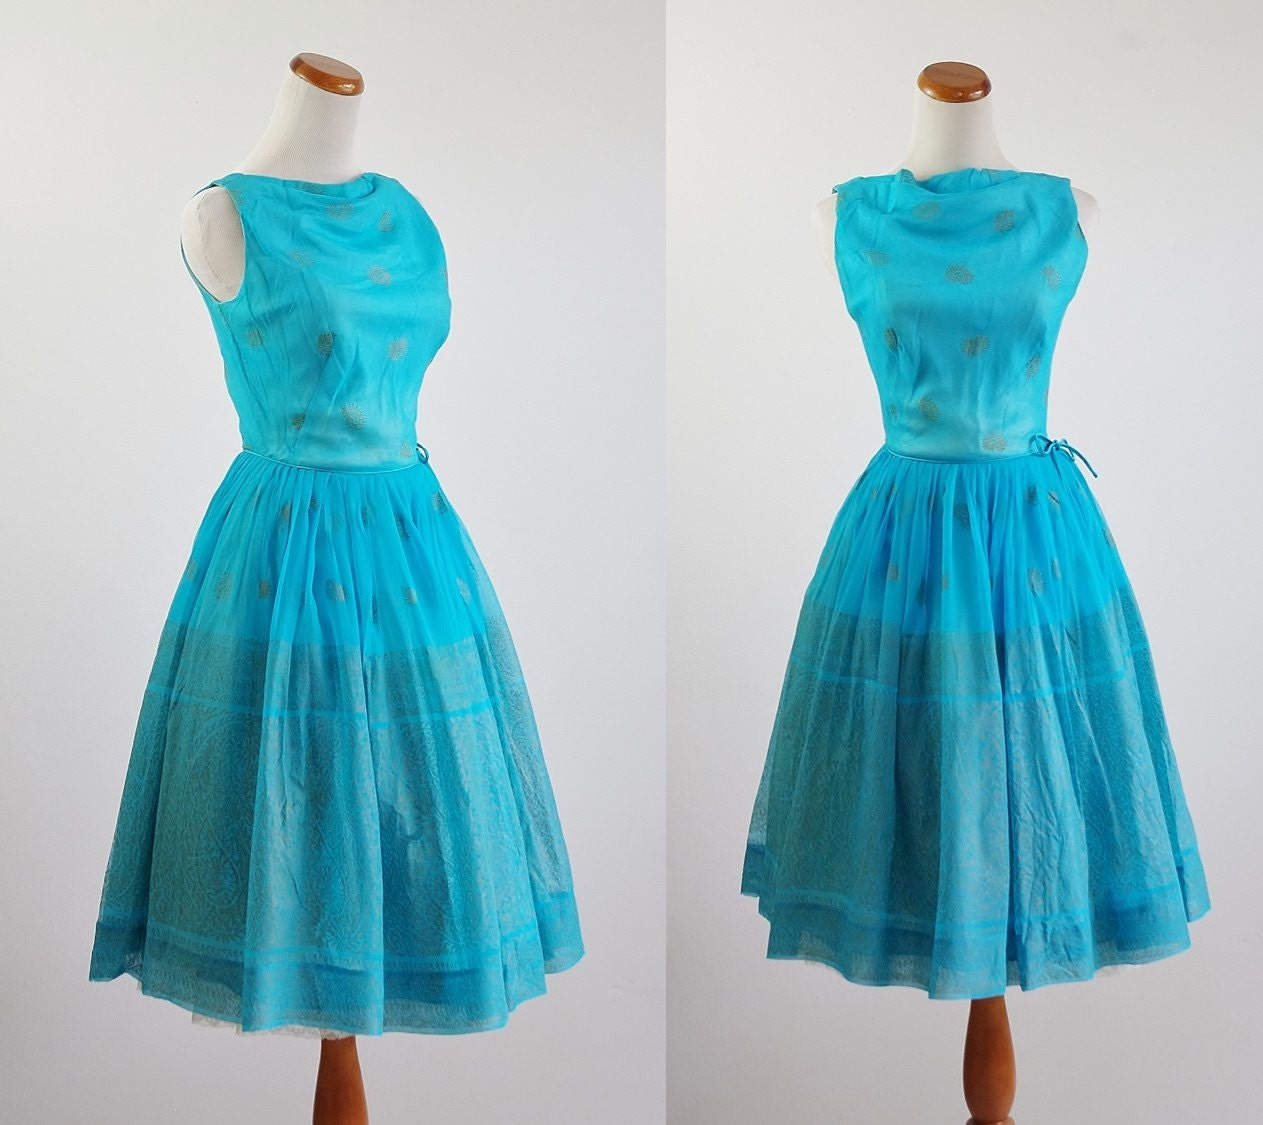 60s style prom dresses wwwimgkidcom the image kid